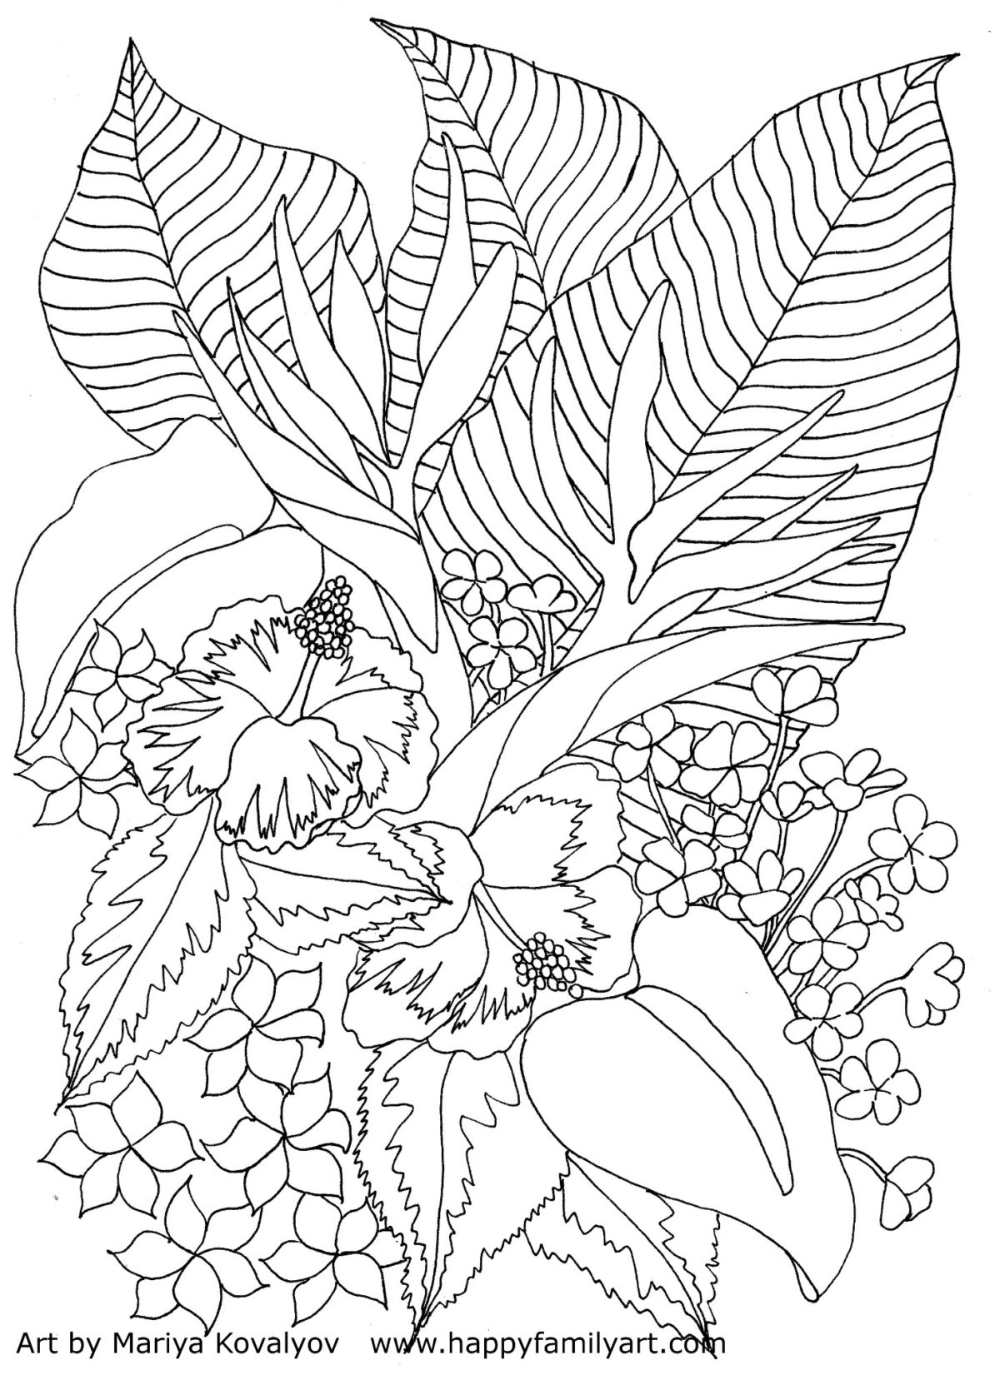 Tropicalflowers Happy Family Art Cool Coloring Pages Flower Coloring Pages Printable Flower Coloring Pages